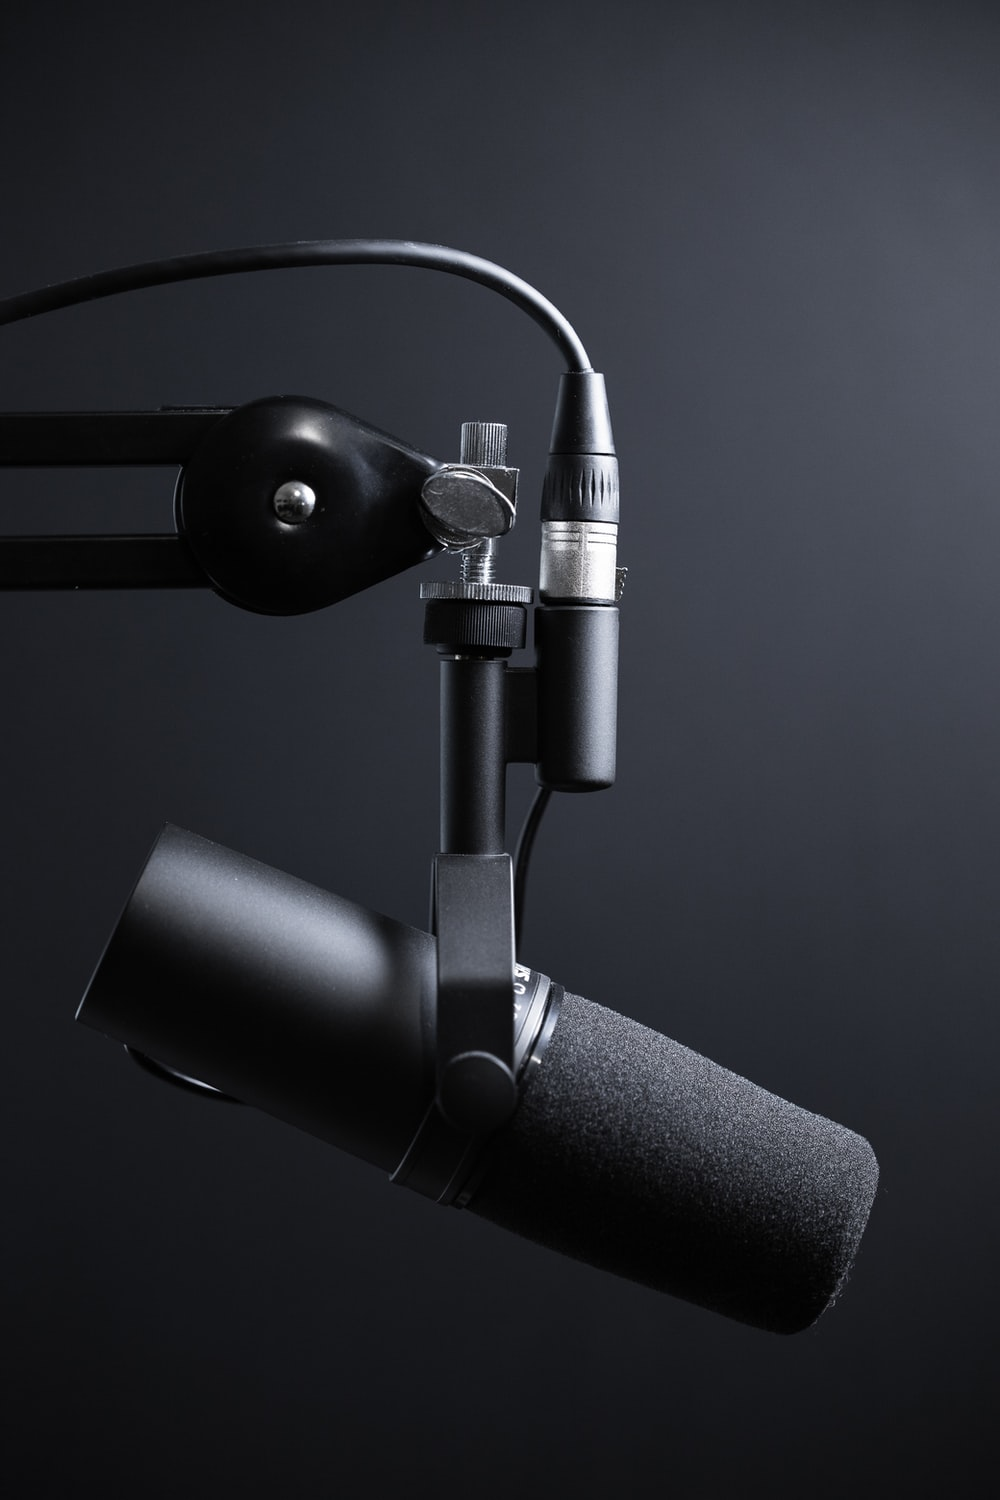 black and silver microphone with stand